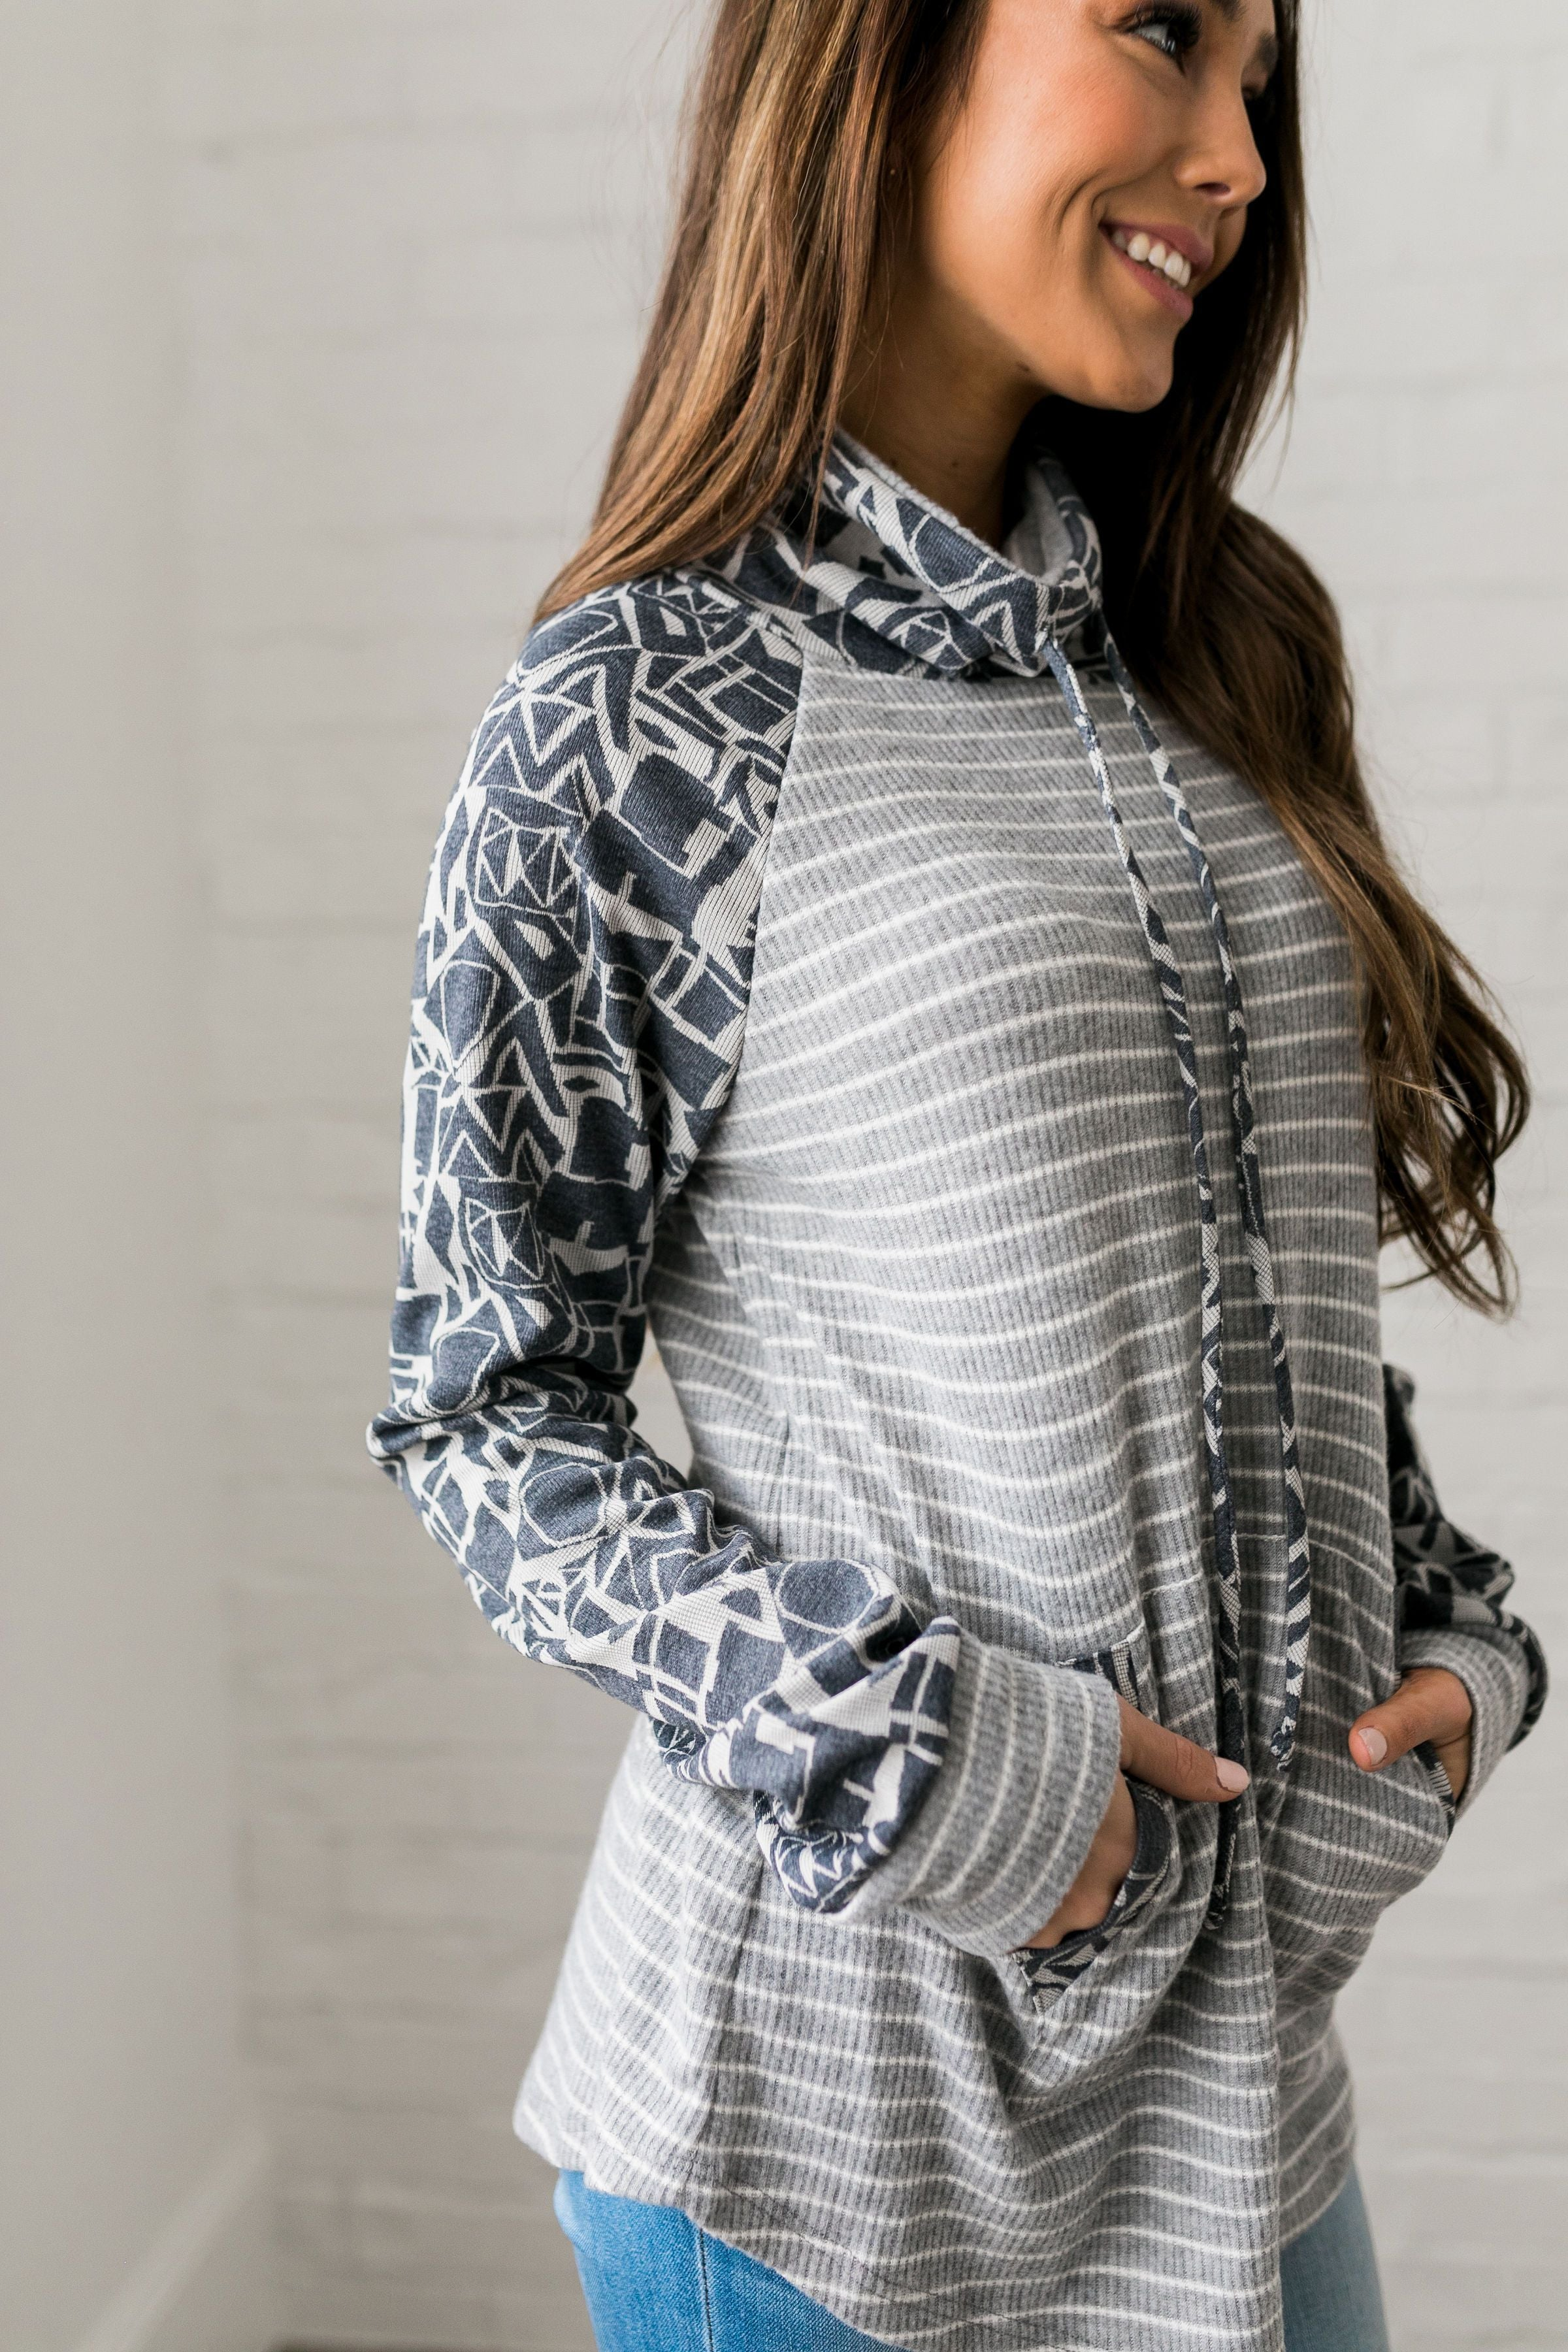 Geometry 101 Raglan Cowl Neck Top - ALL SALES FINAL